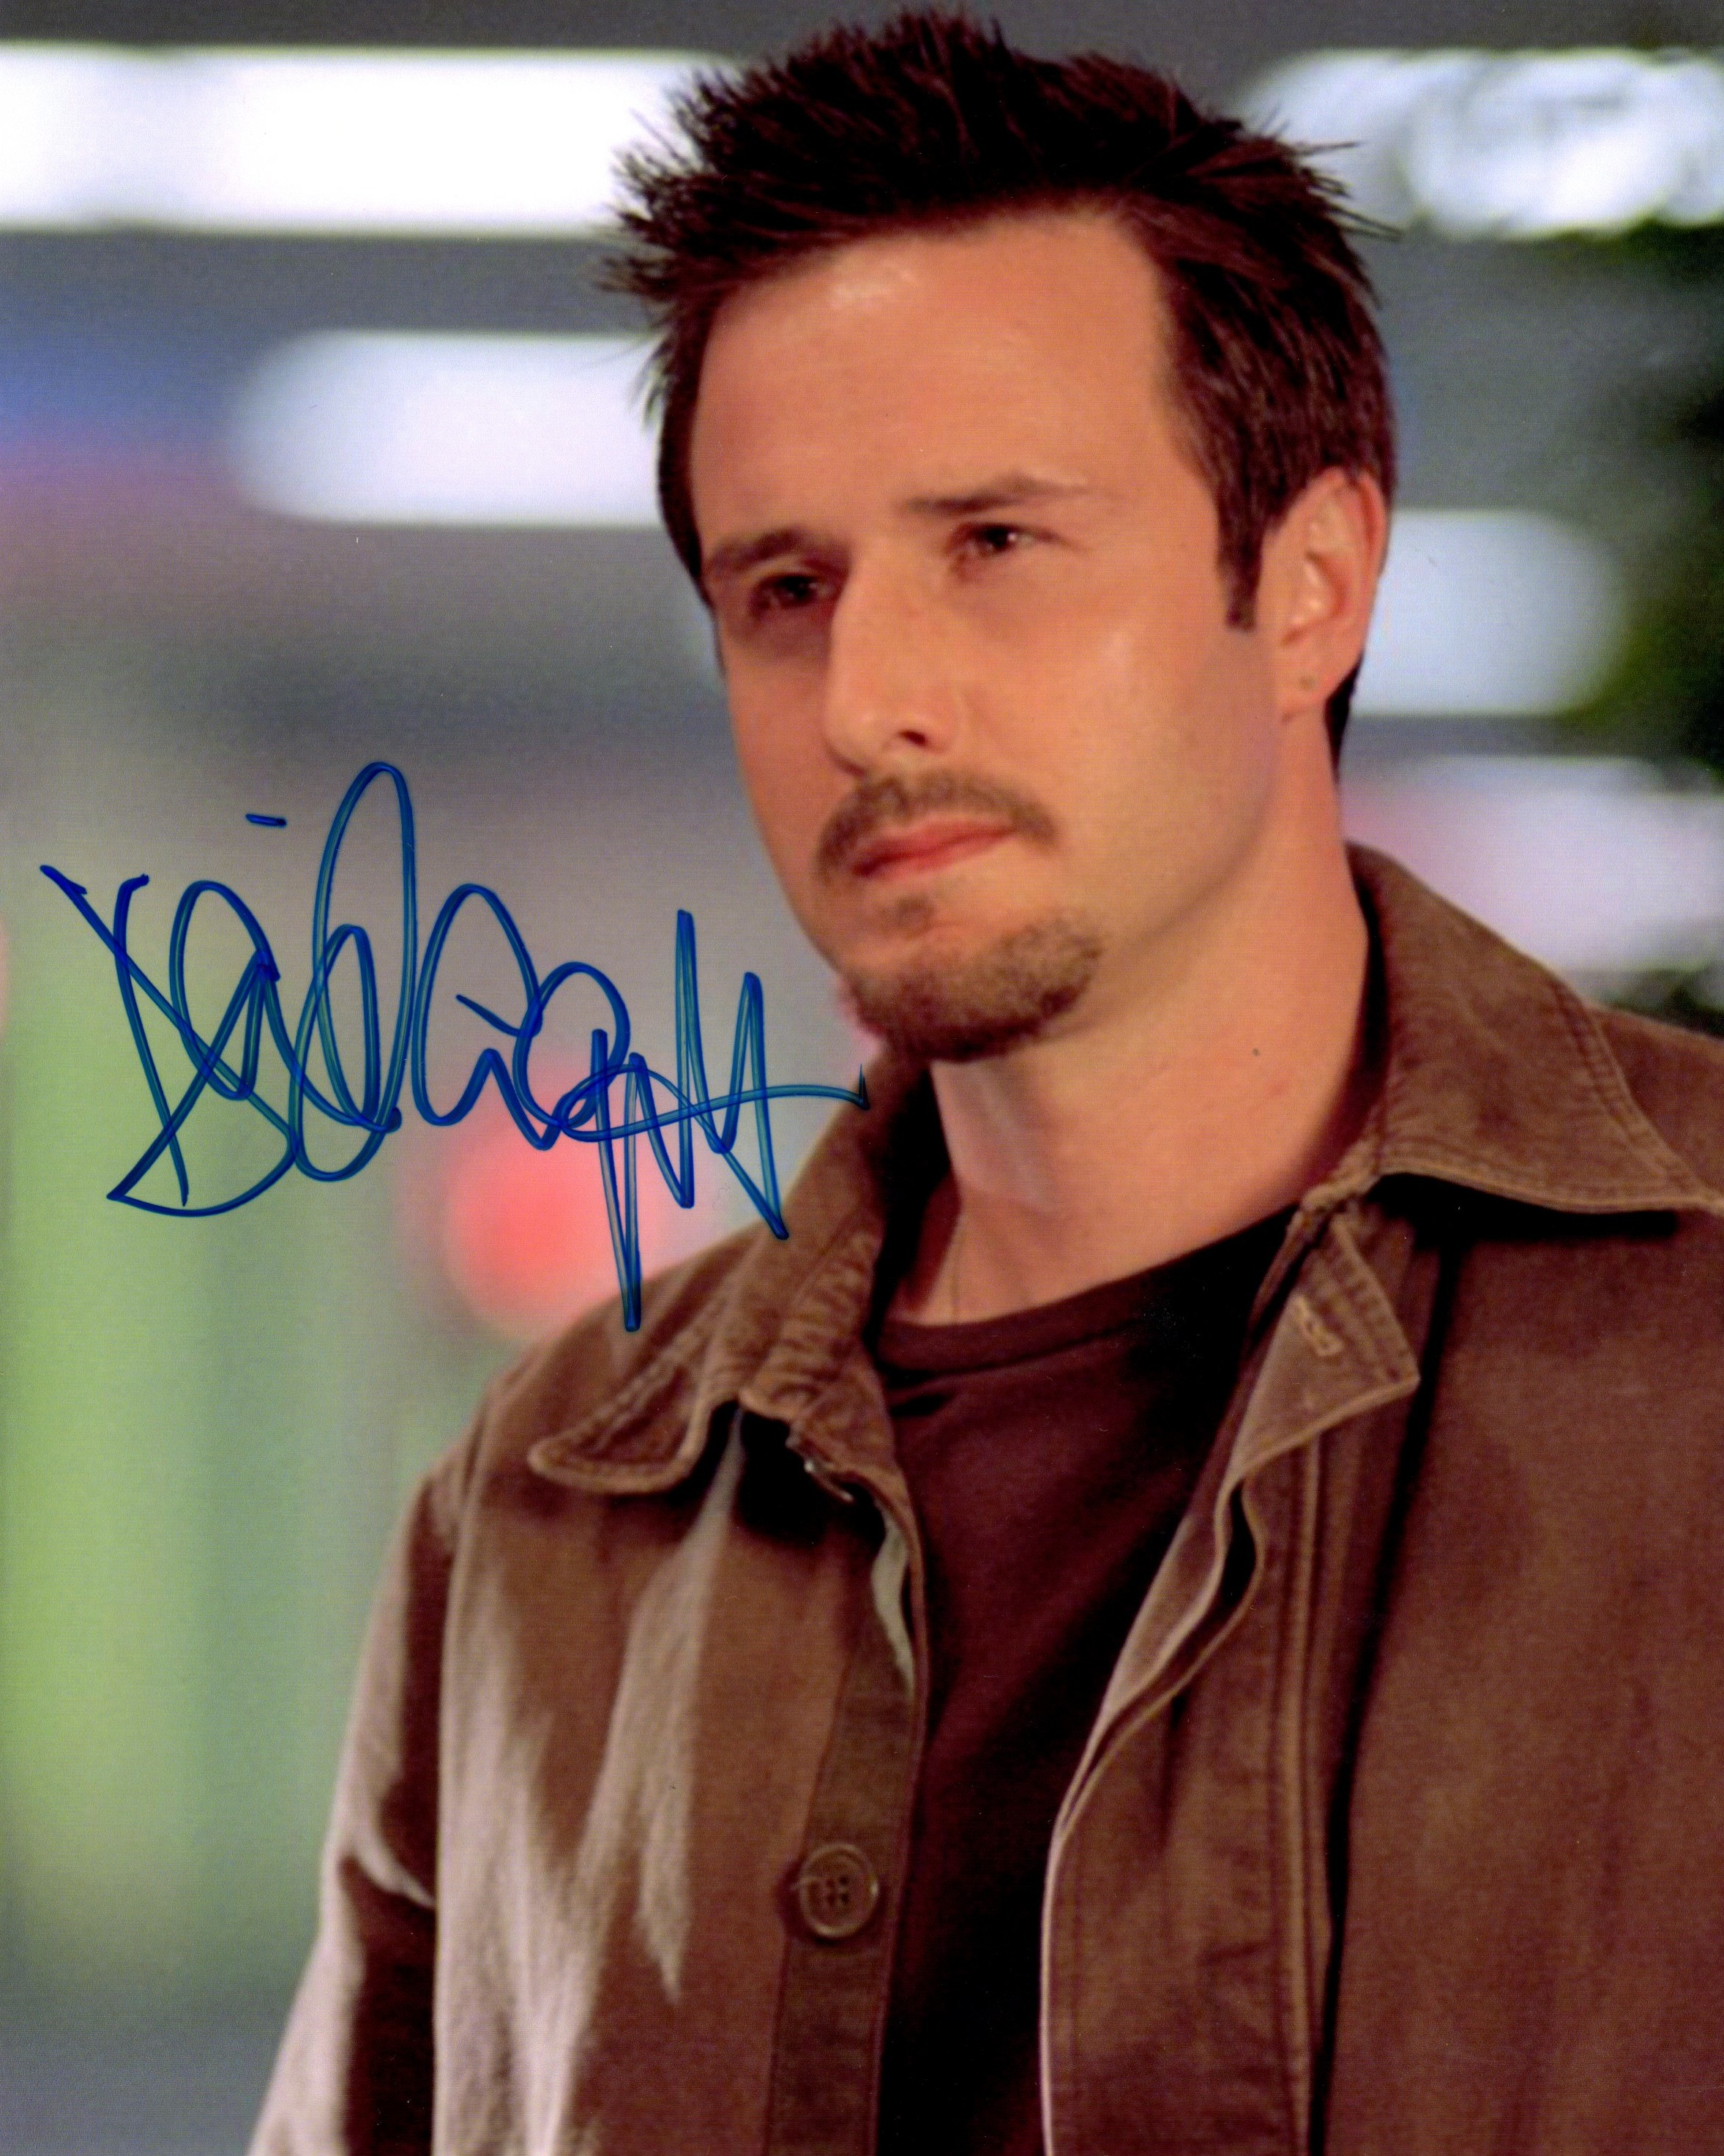 http://www.galacticproductionsevents.com/resources/DavidArquette-A.jpg